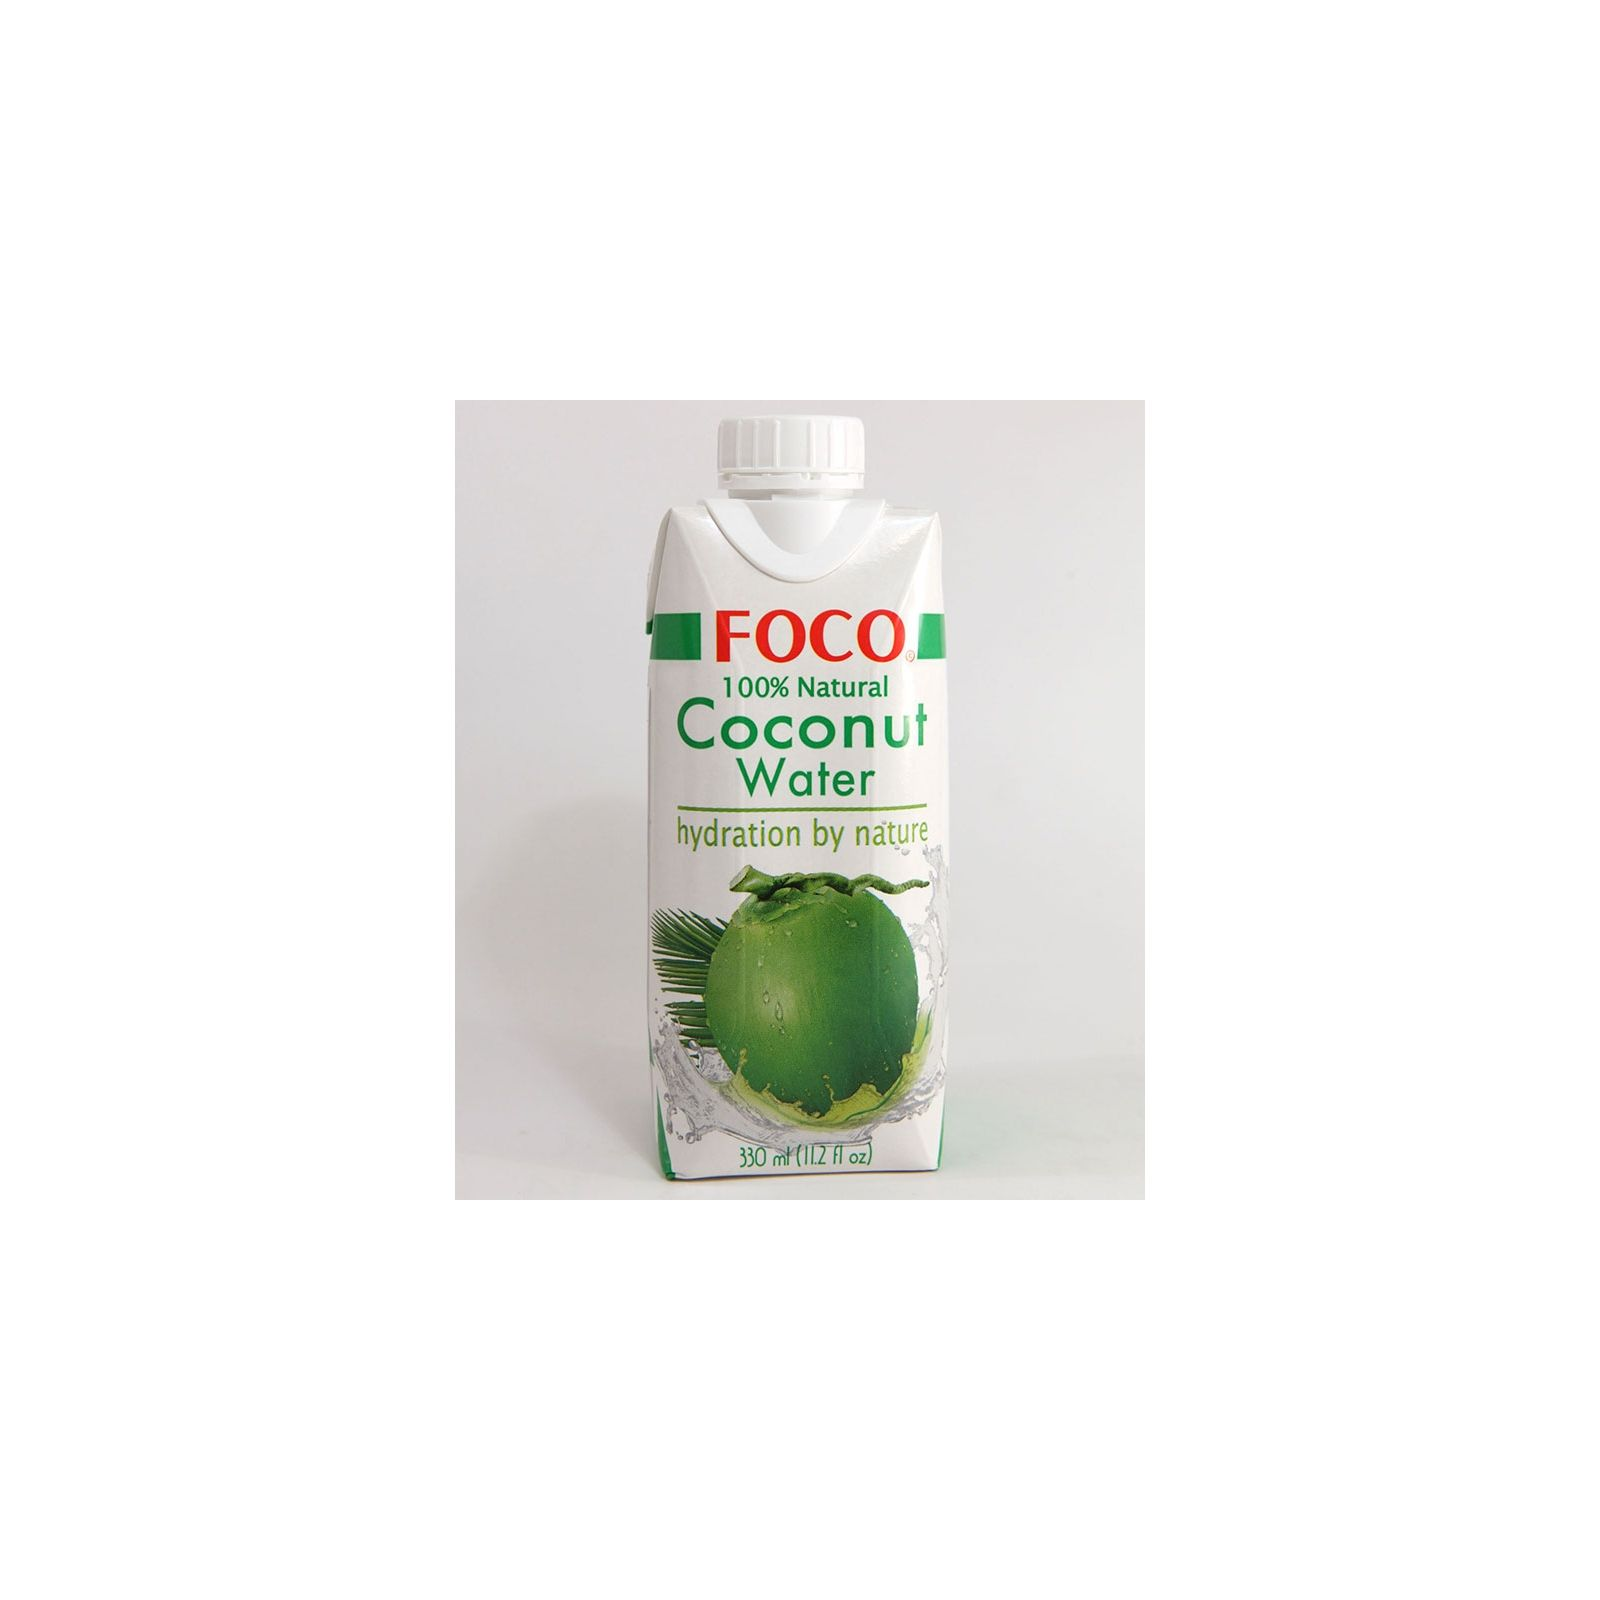 brique coconut water foco 178222